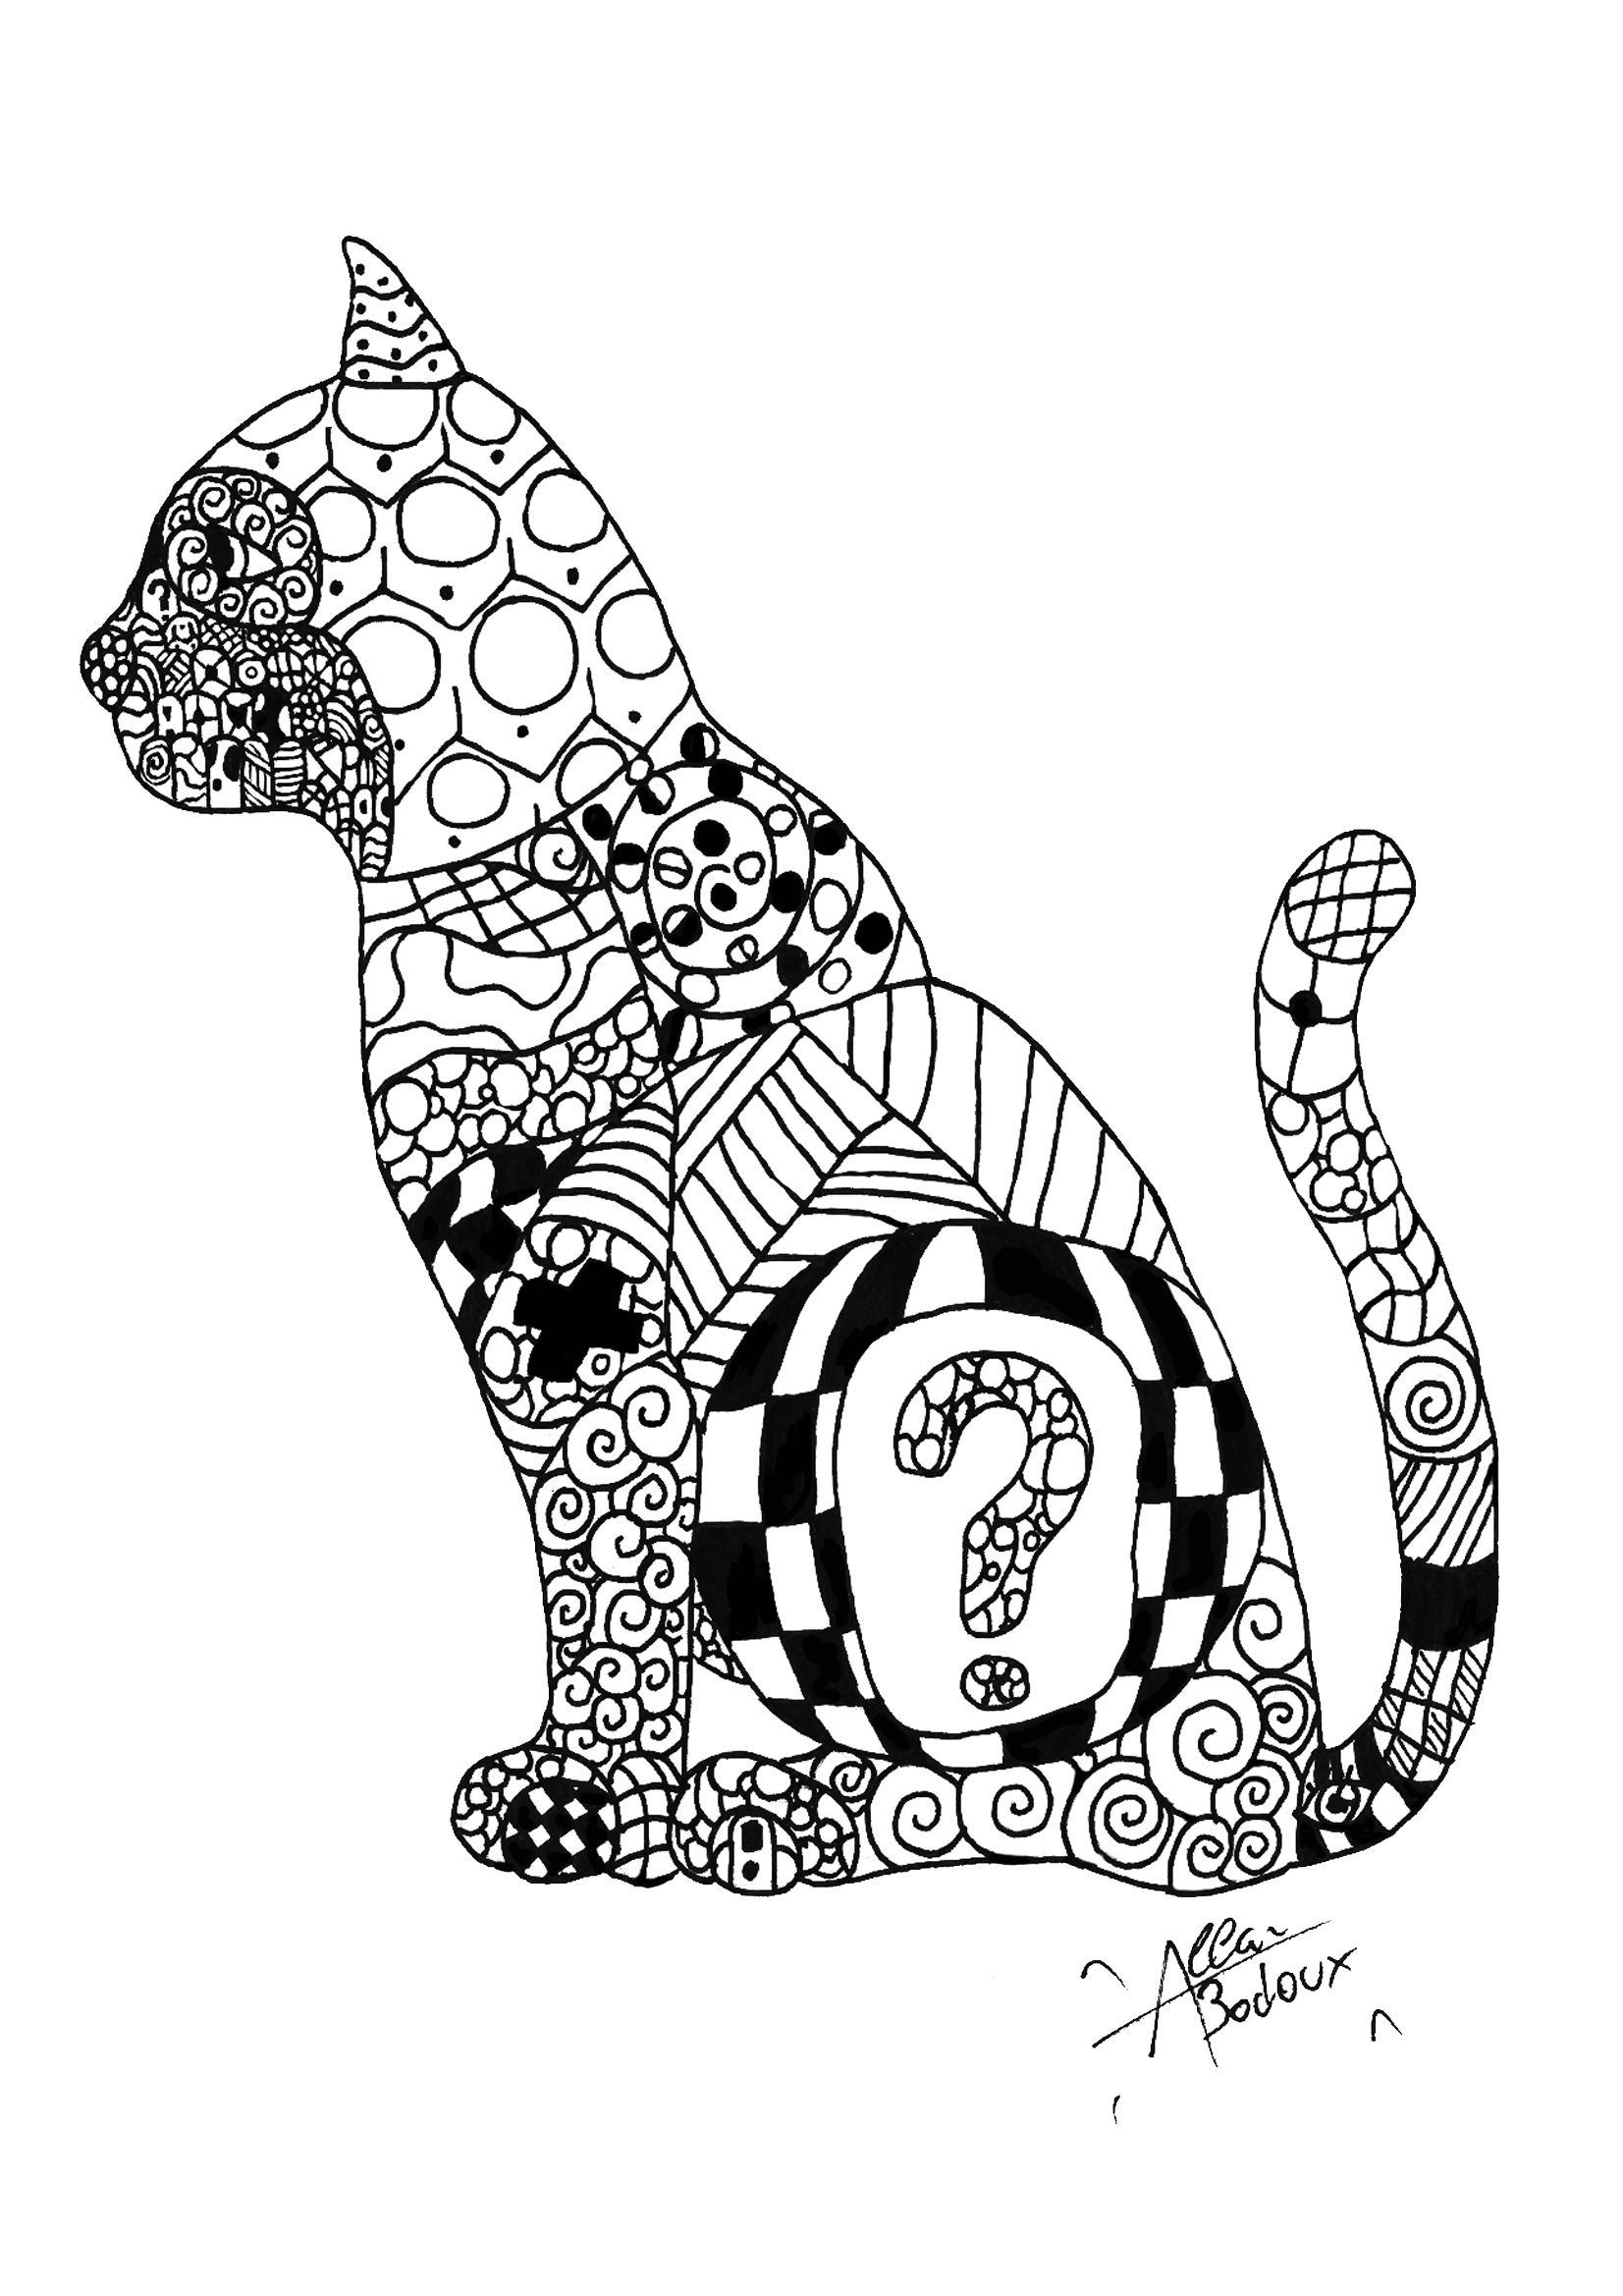 Discover this coloring page of cat, style Zentangle